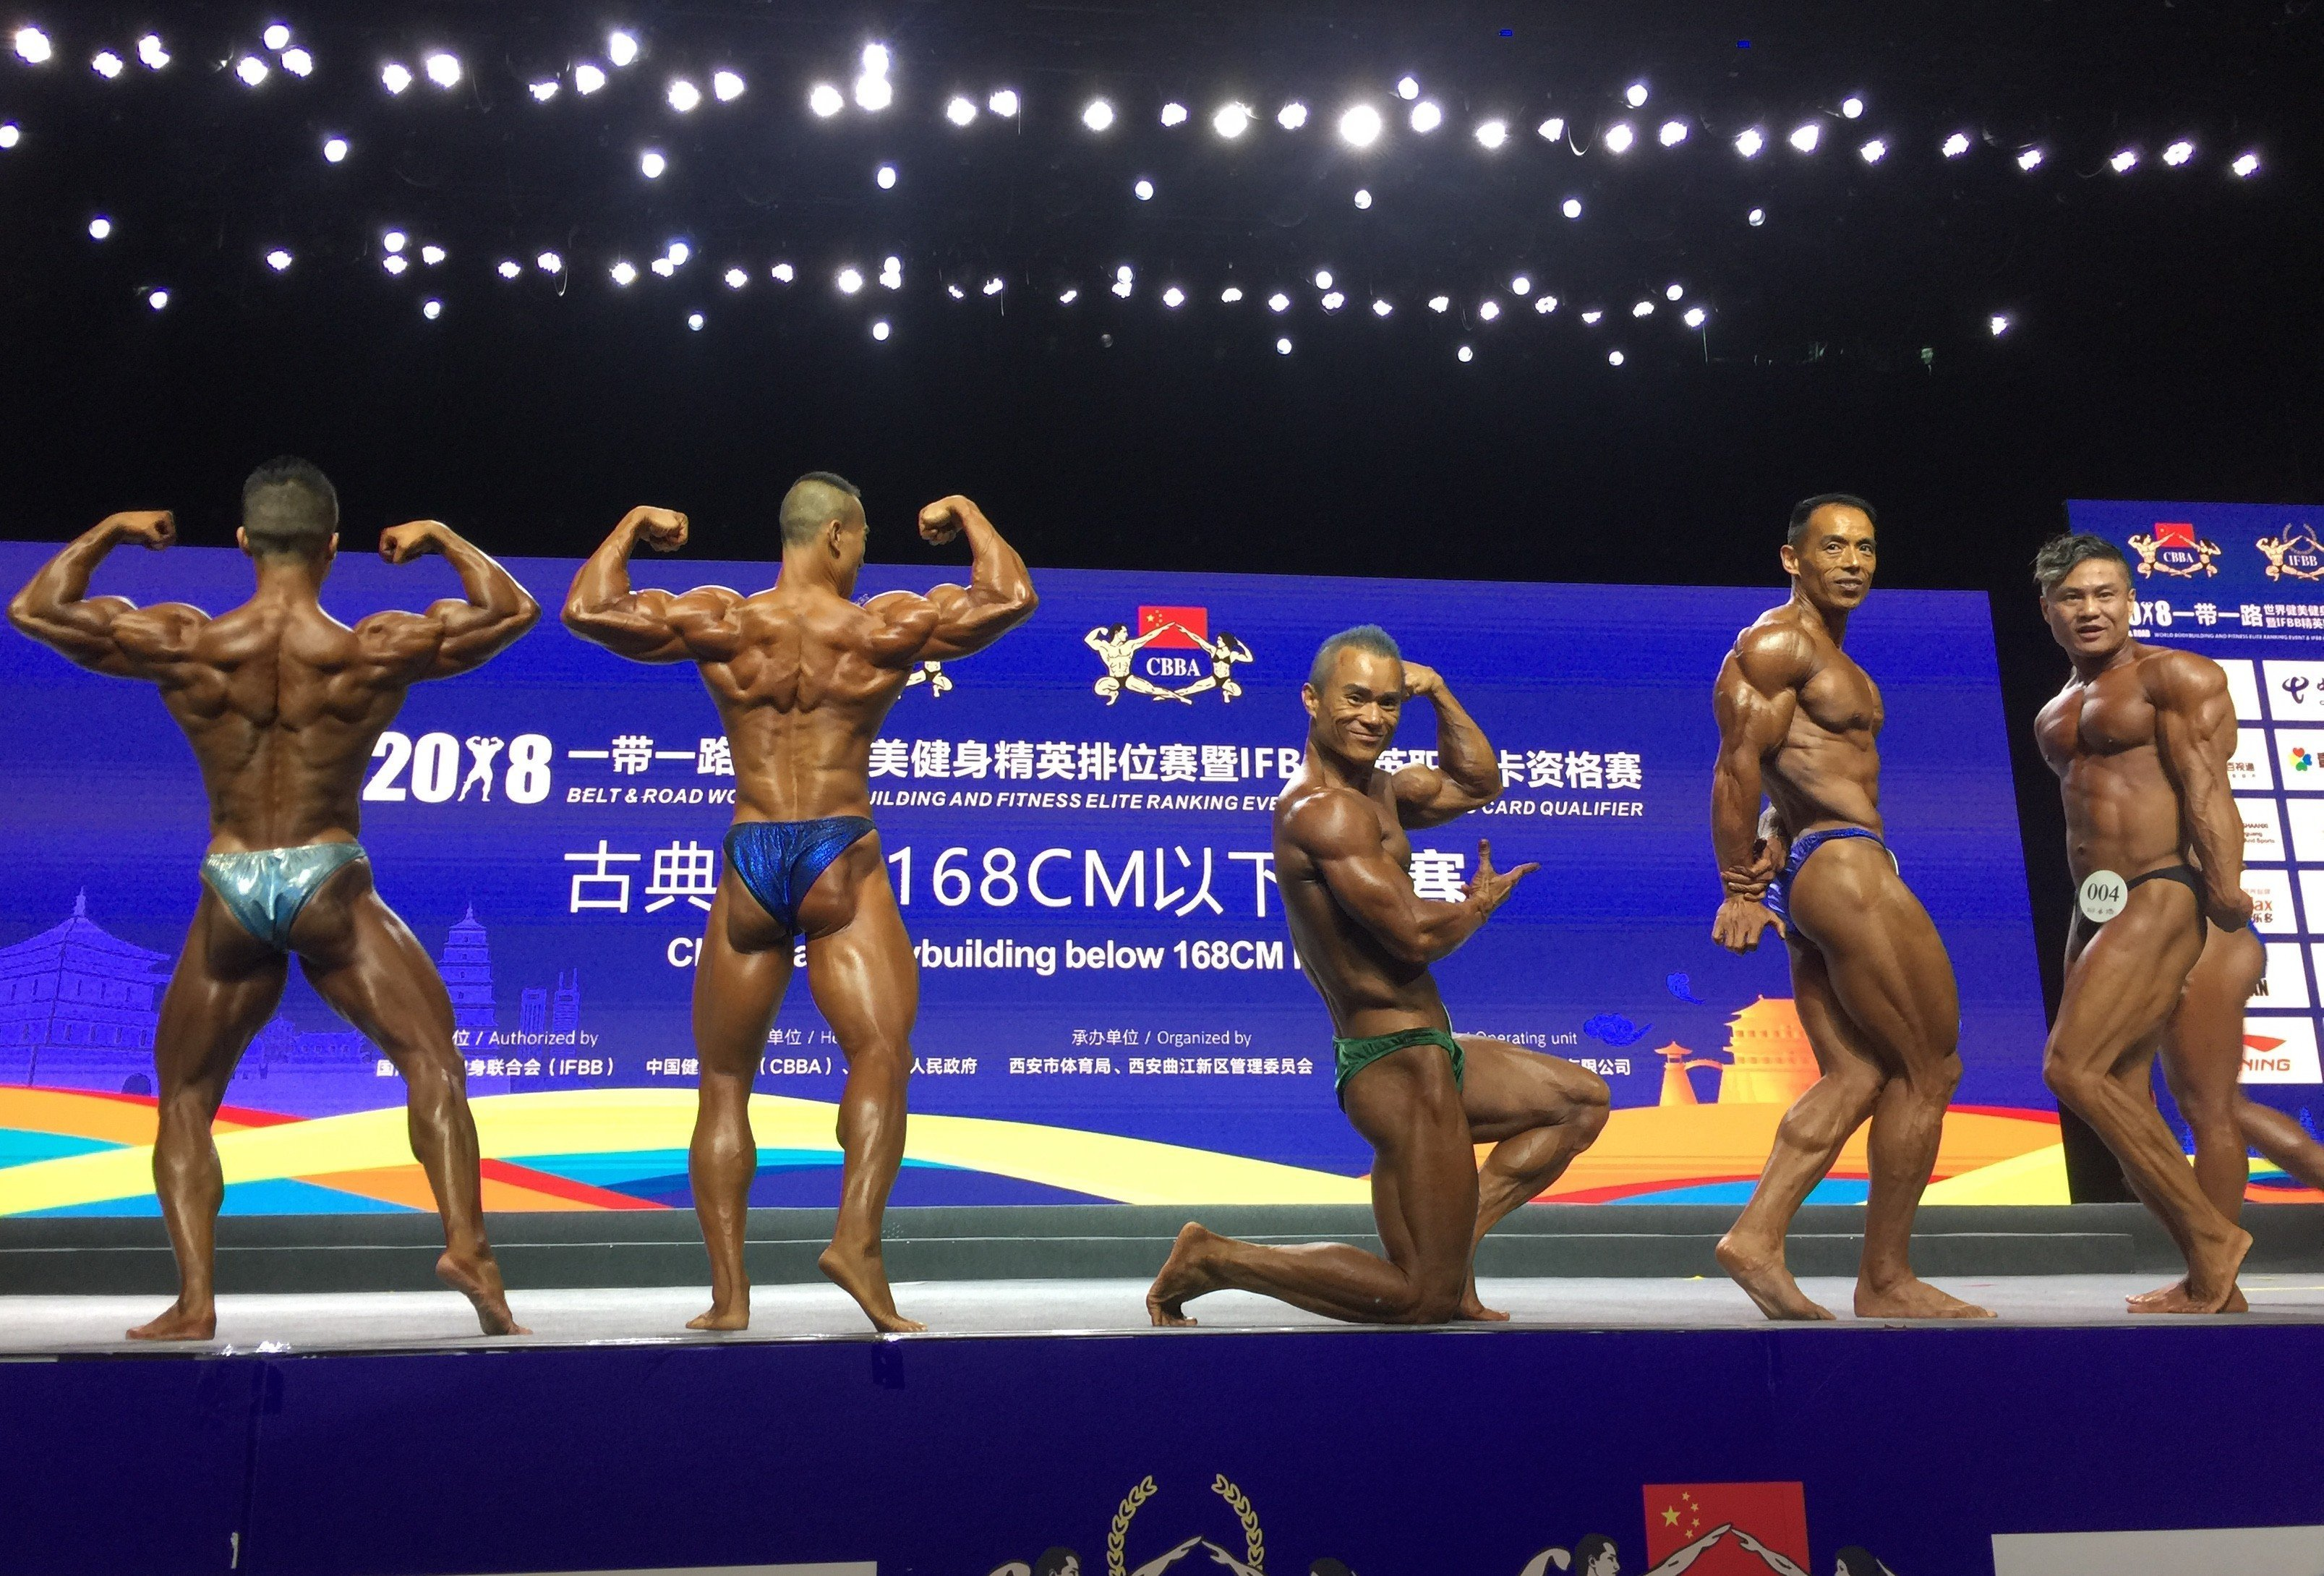 RESULTS  IFBB 2018 Belt   Road (China) - Evolution of Bodybuilding 5262bcb426